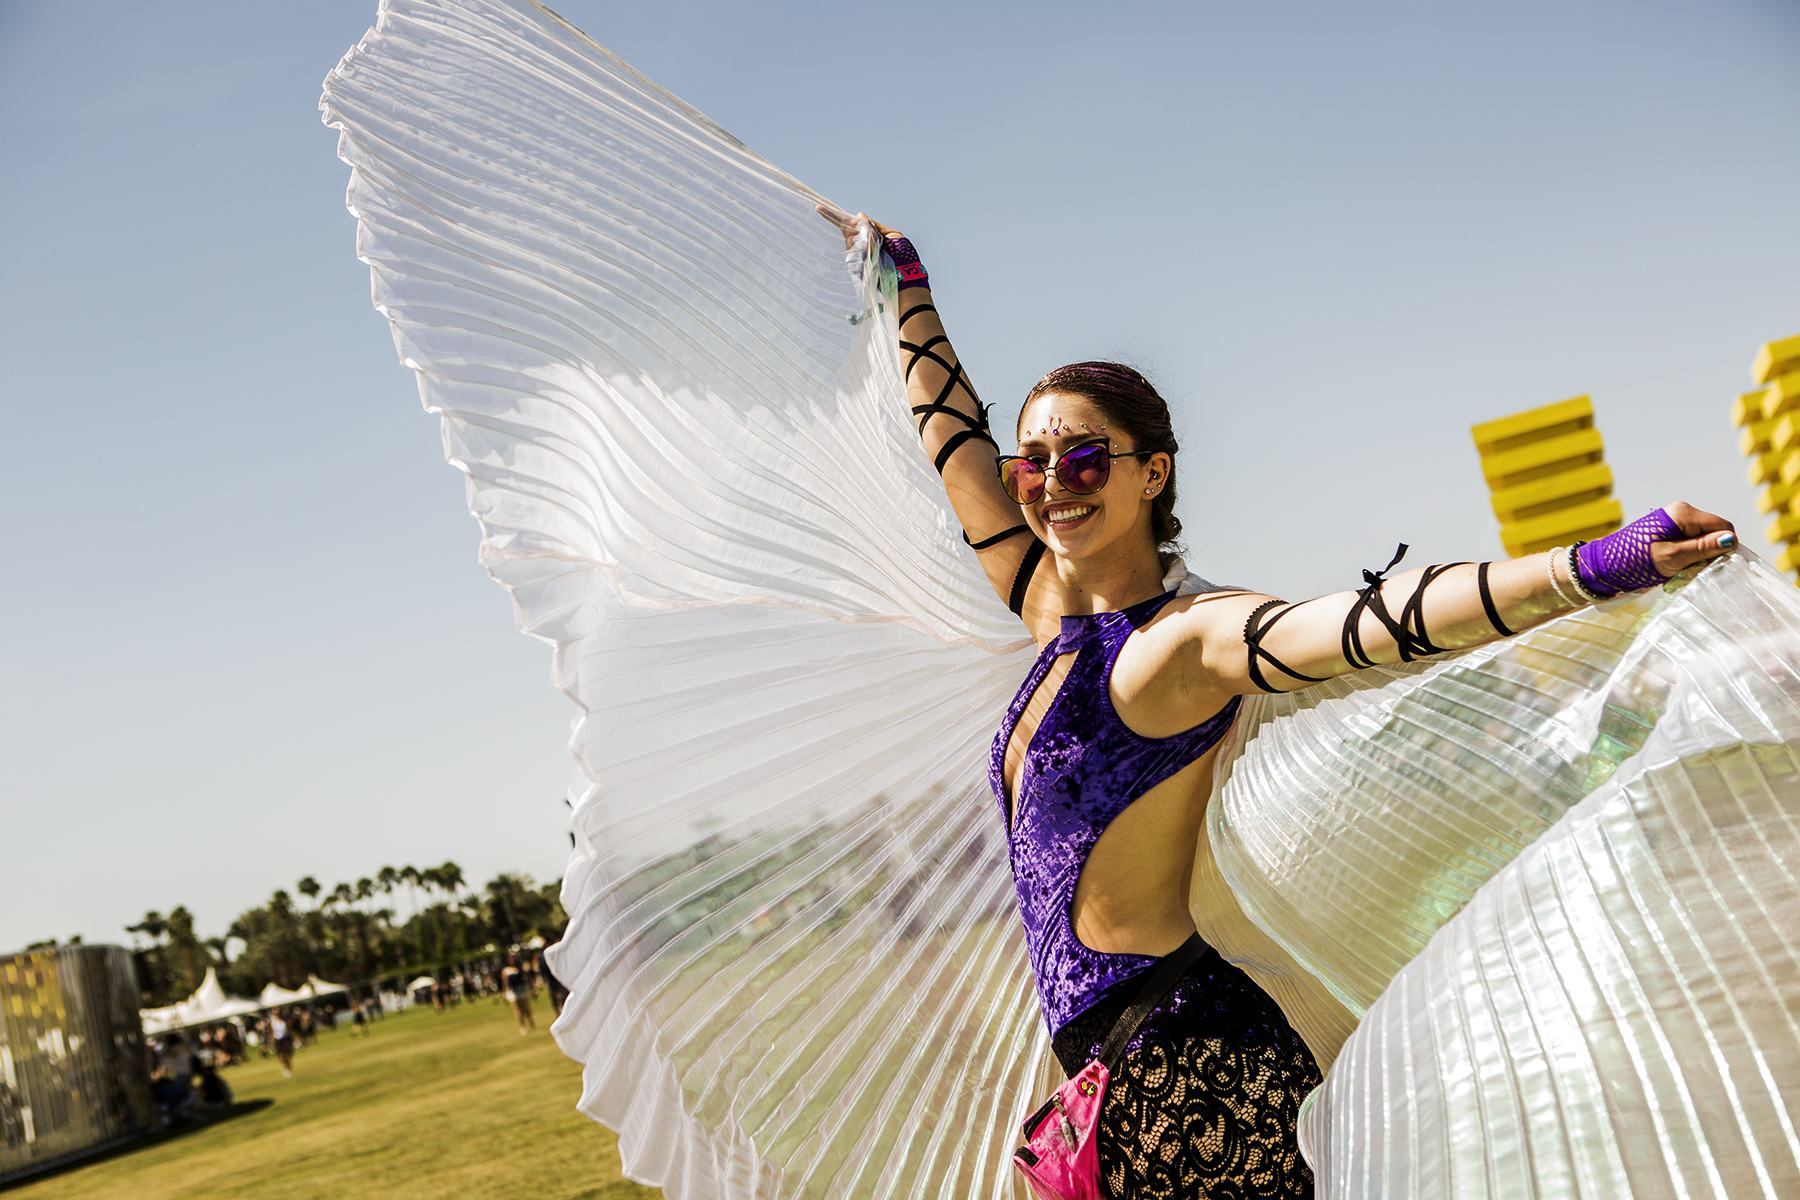 Coachella 2016: See Fest's Hottest Fashions, Wildest Costumes